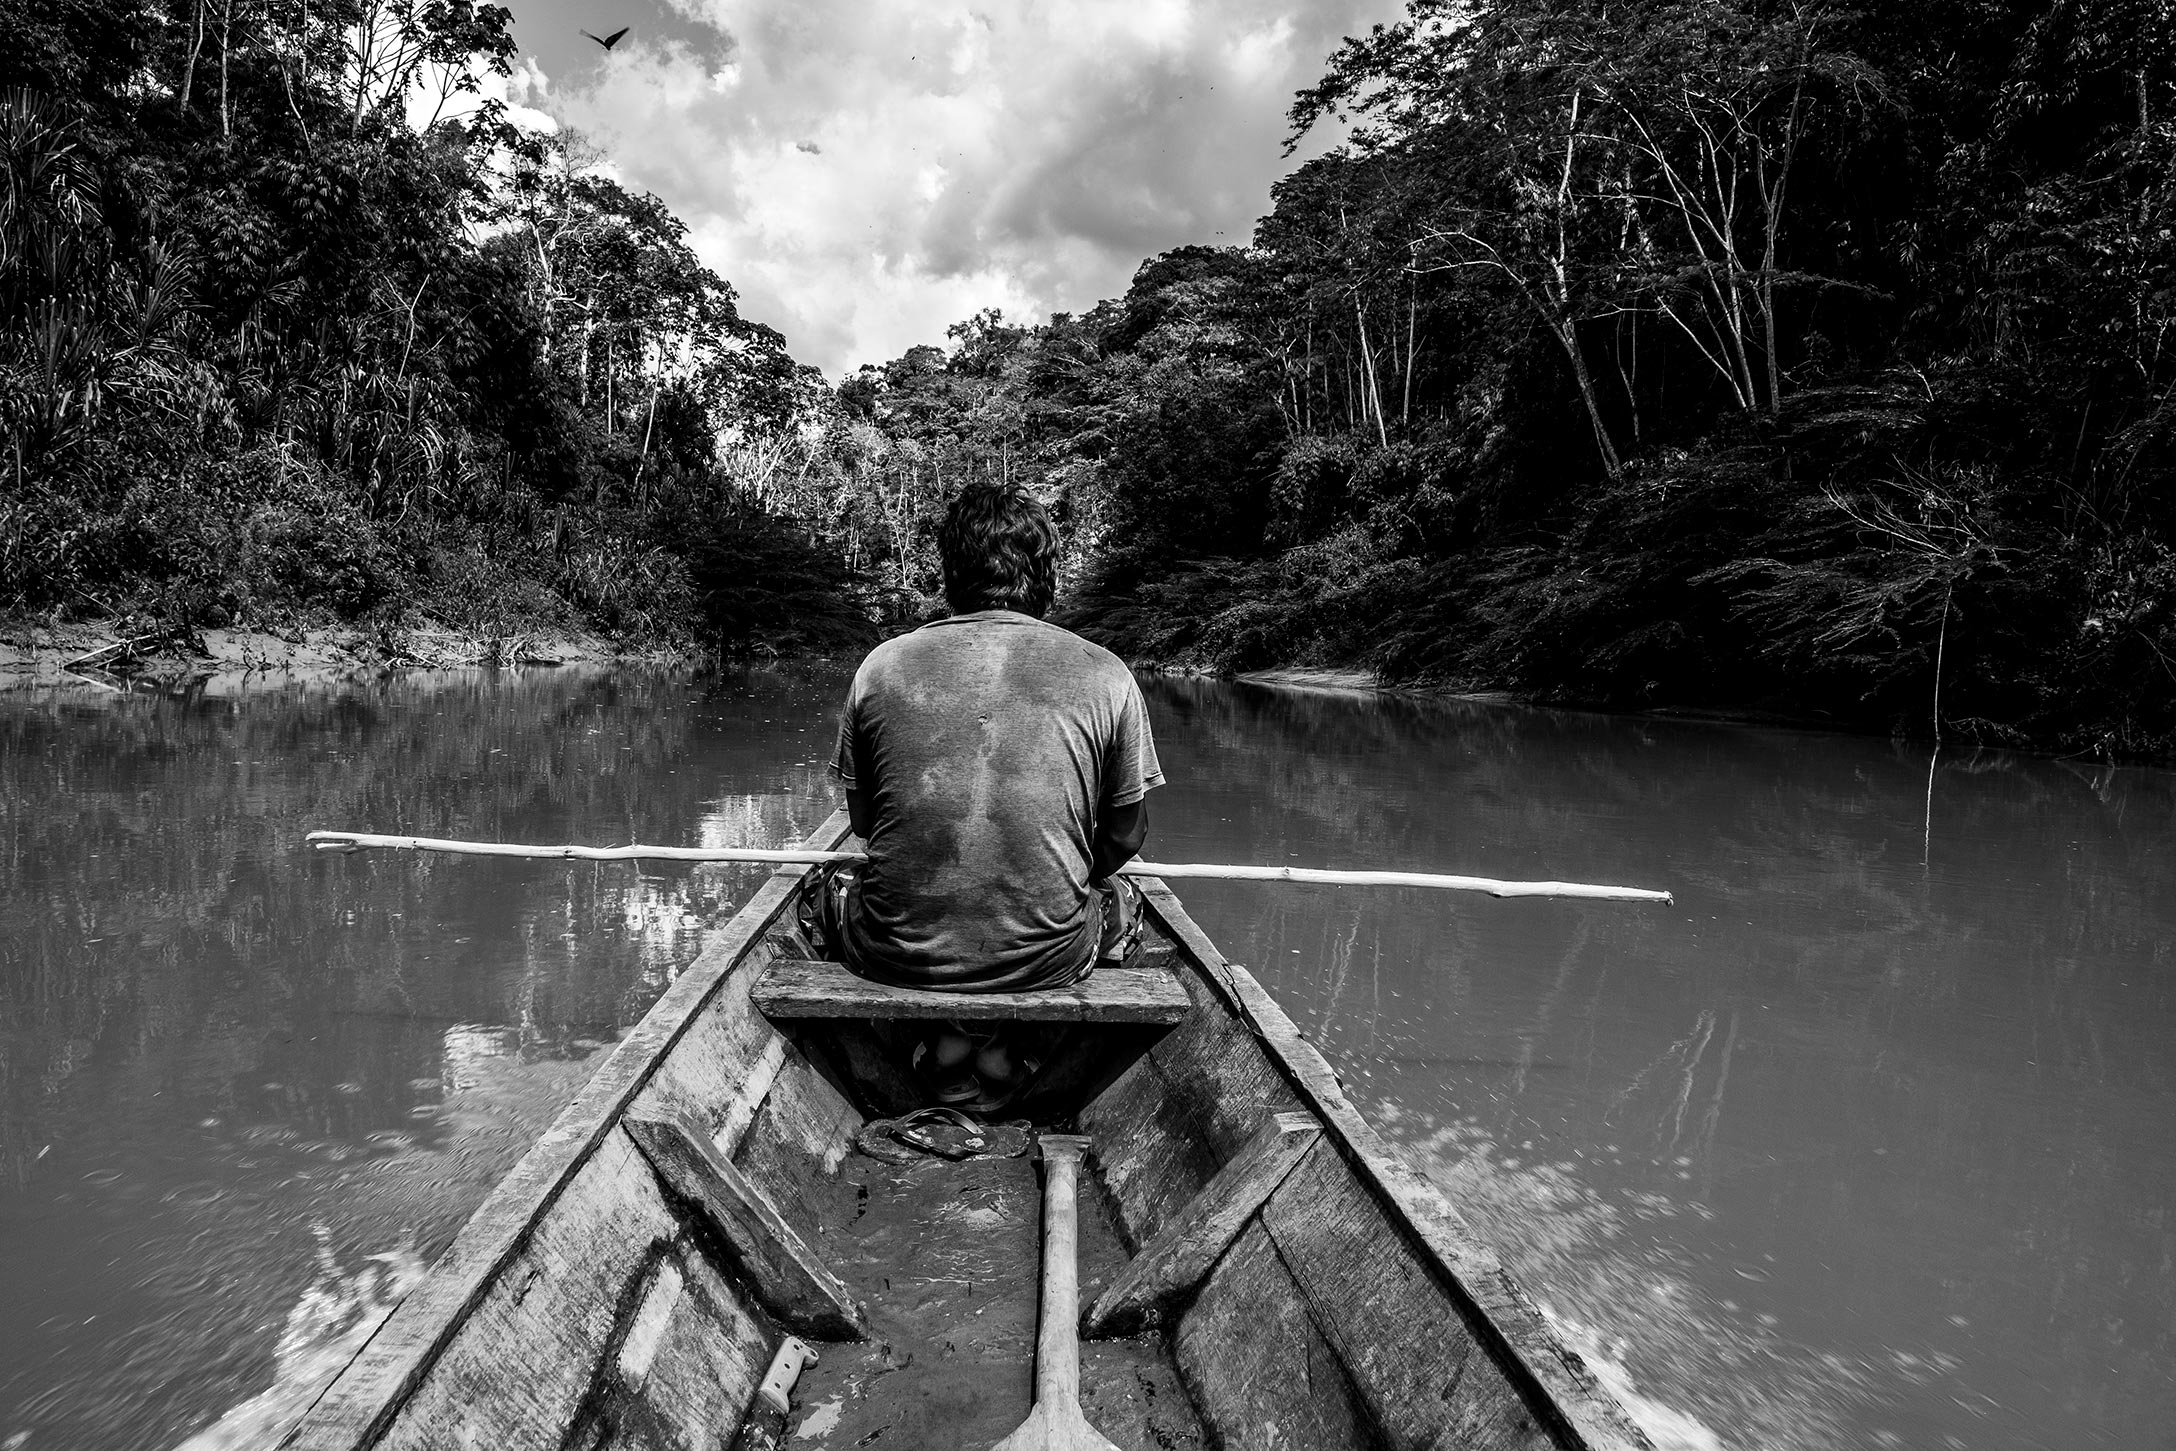 A man in a rowboat in a river surrounded by dense rainforest; he is seen from the back in this black and white photograph.